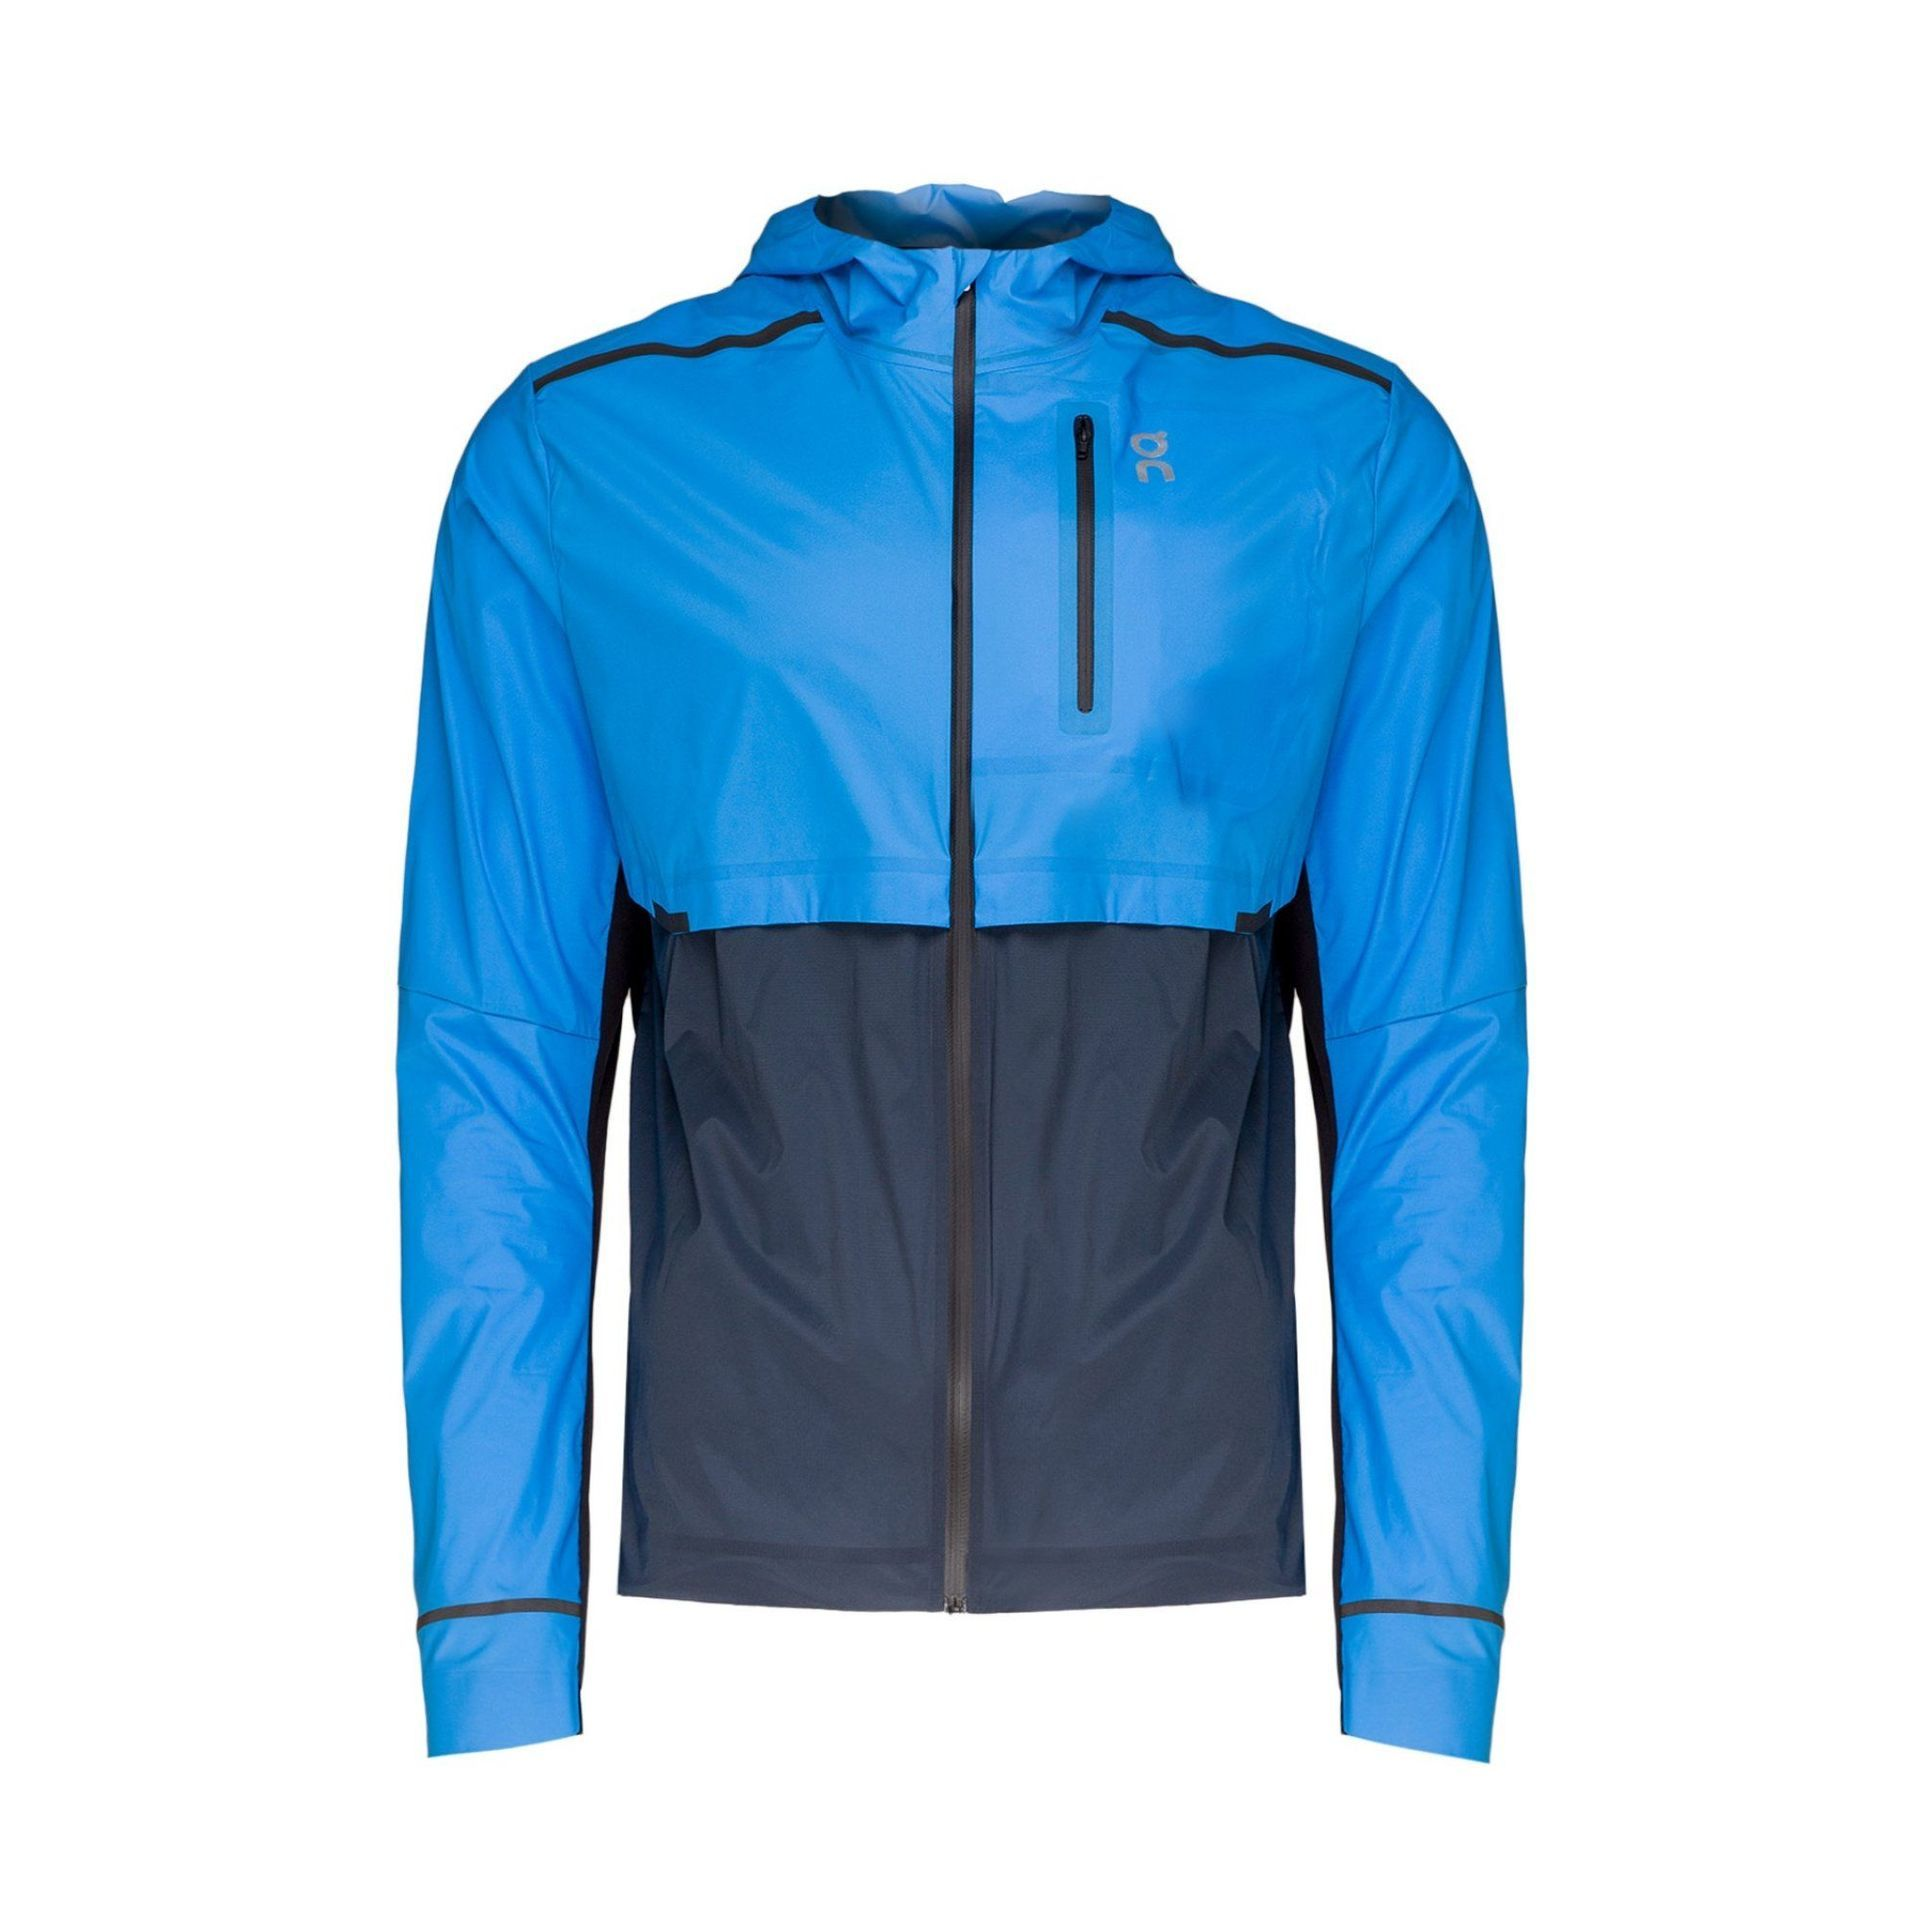 KURTKA ON RUNNING WEATHER JACKET M MALIBU|NAVY